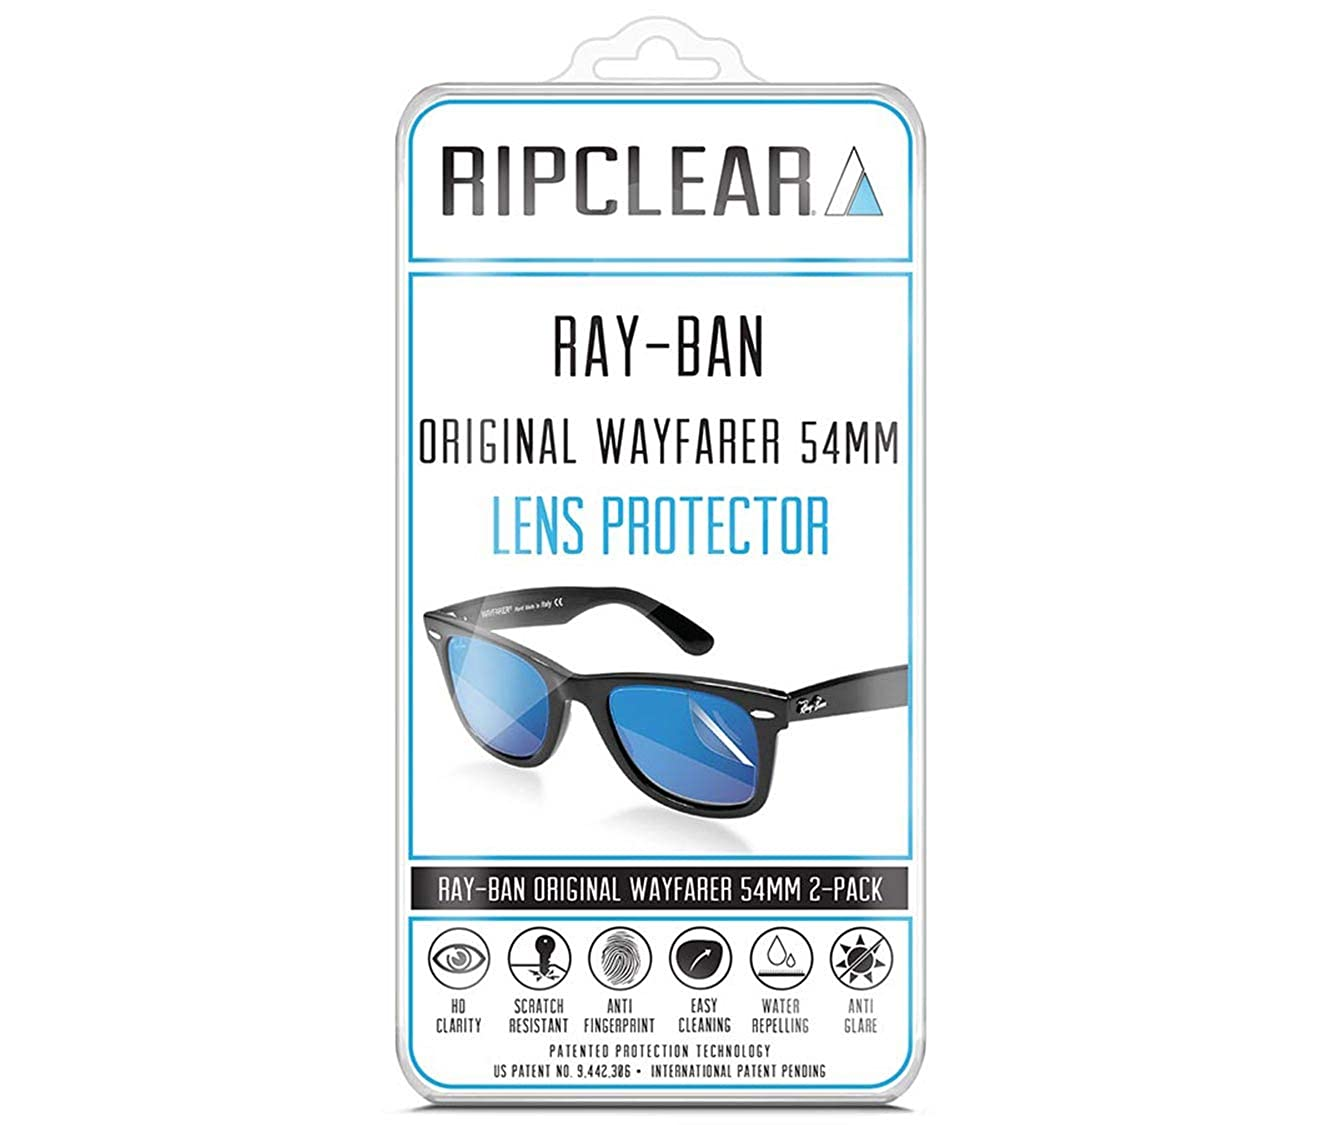 a4280ca60e6 RIPCLEAR Sunglass Protectors for Ray-Ban RB2140 Original Wayfarer Classic  (54mm) Lens Protectors Sunglasses - Scratch Proof Crystal Clear - 2 pack at  Amazon ...